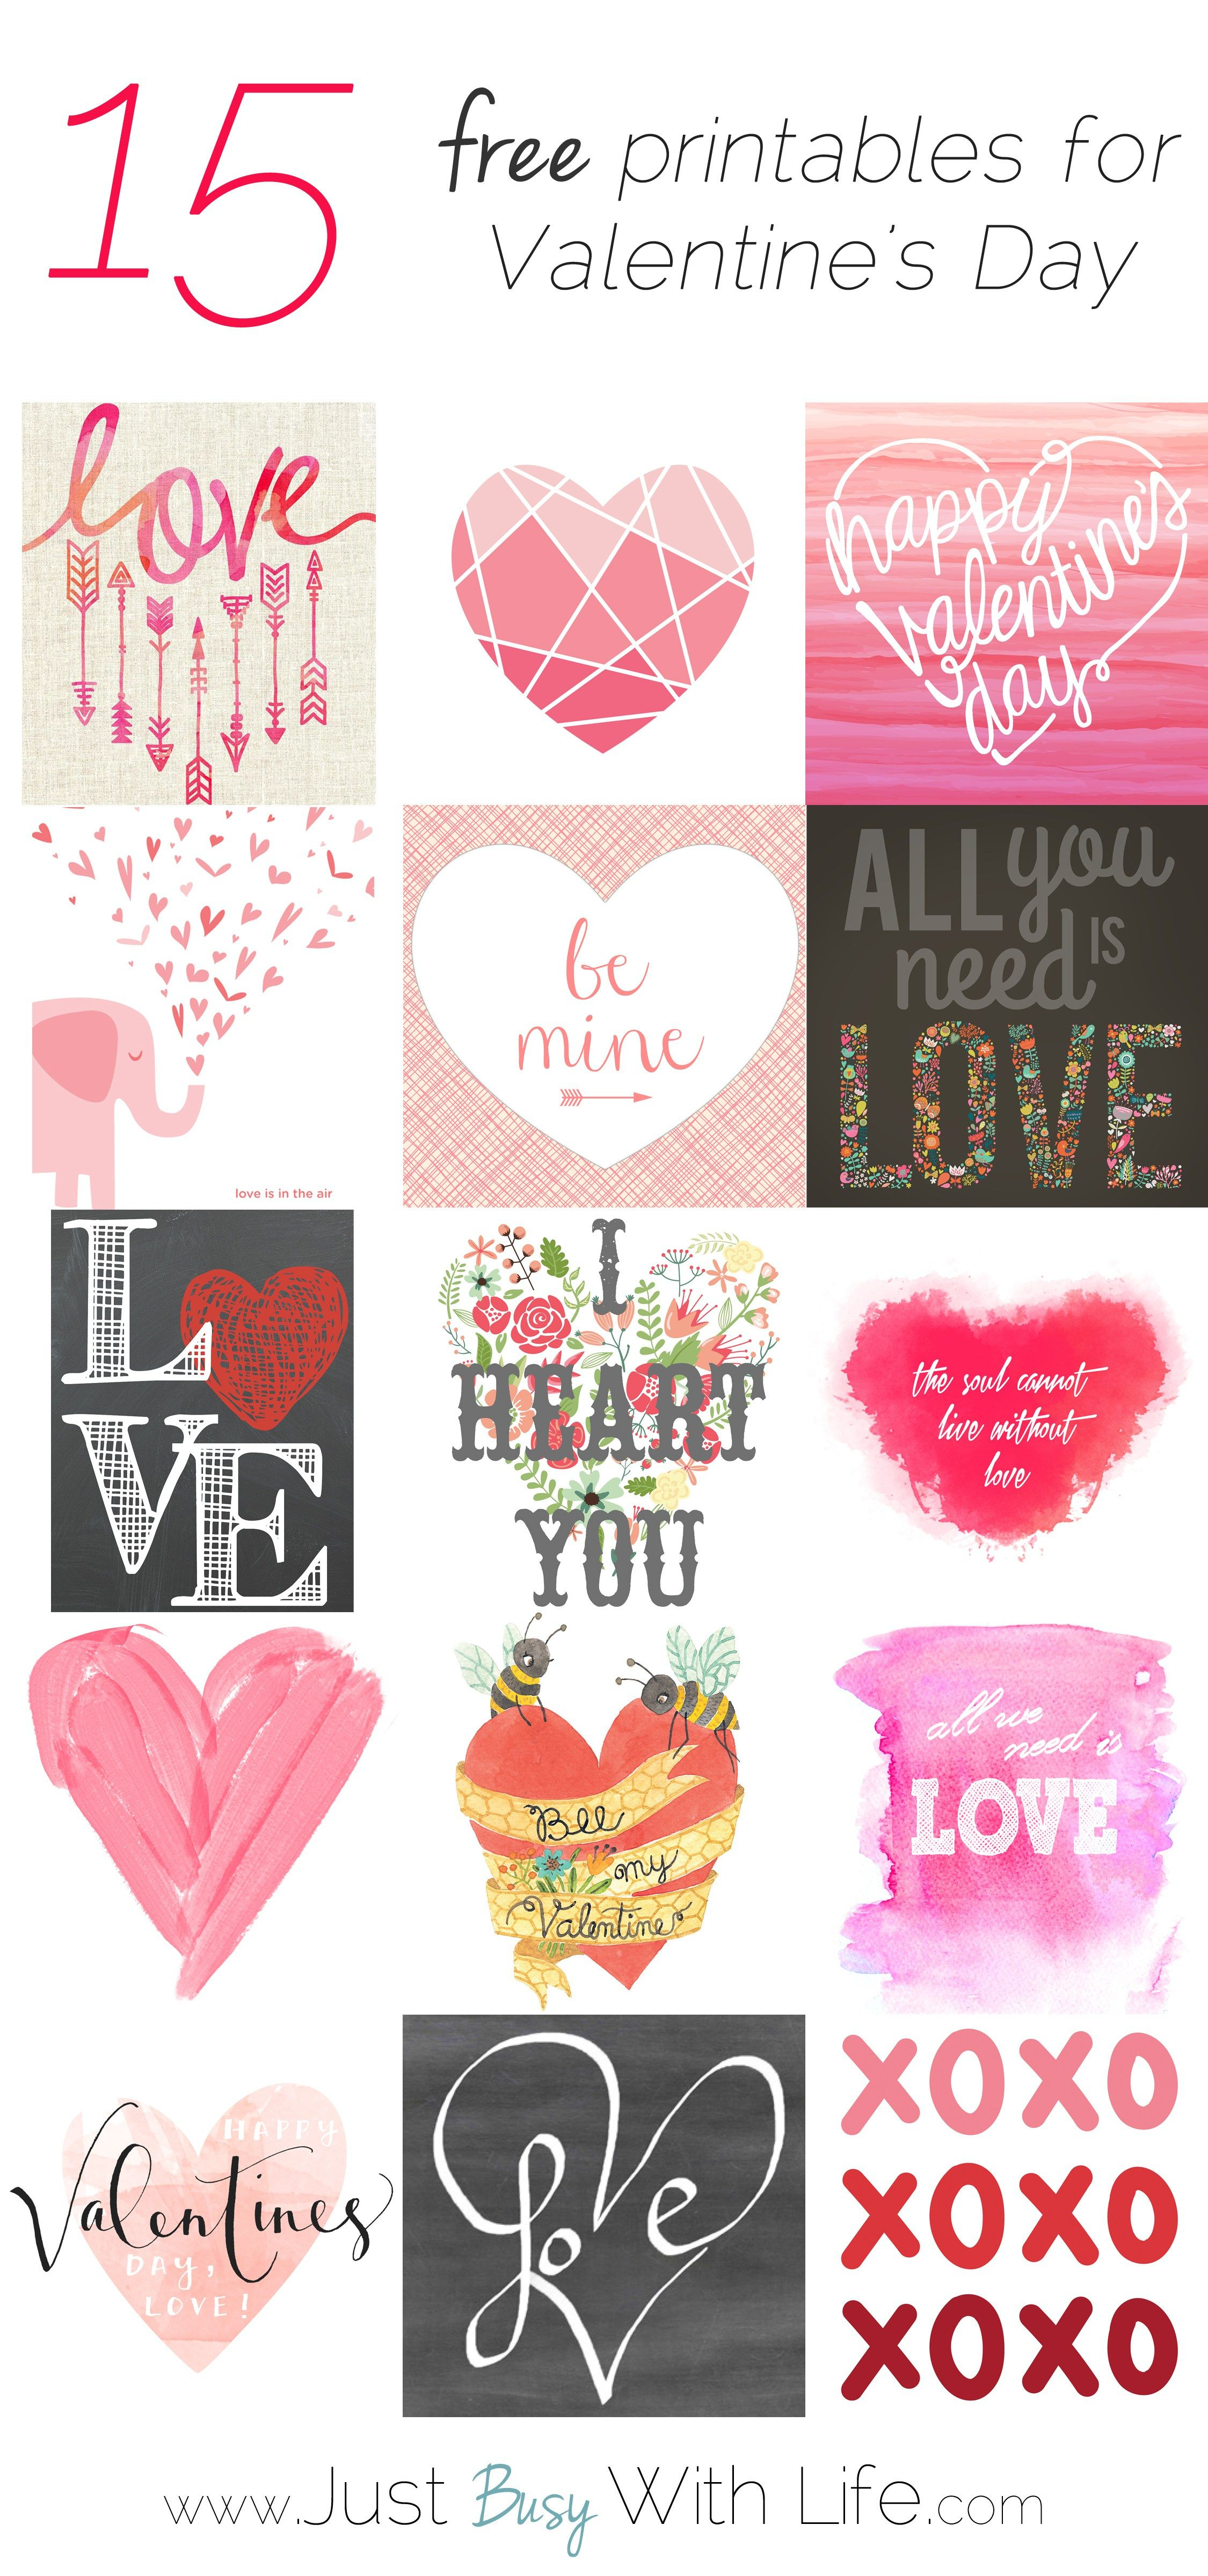 15 Free Valentine's Day Printables | Just Busy With Life | Holidays - Free Printable Valentine Decorations